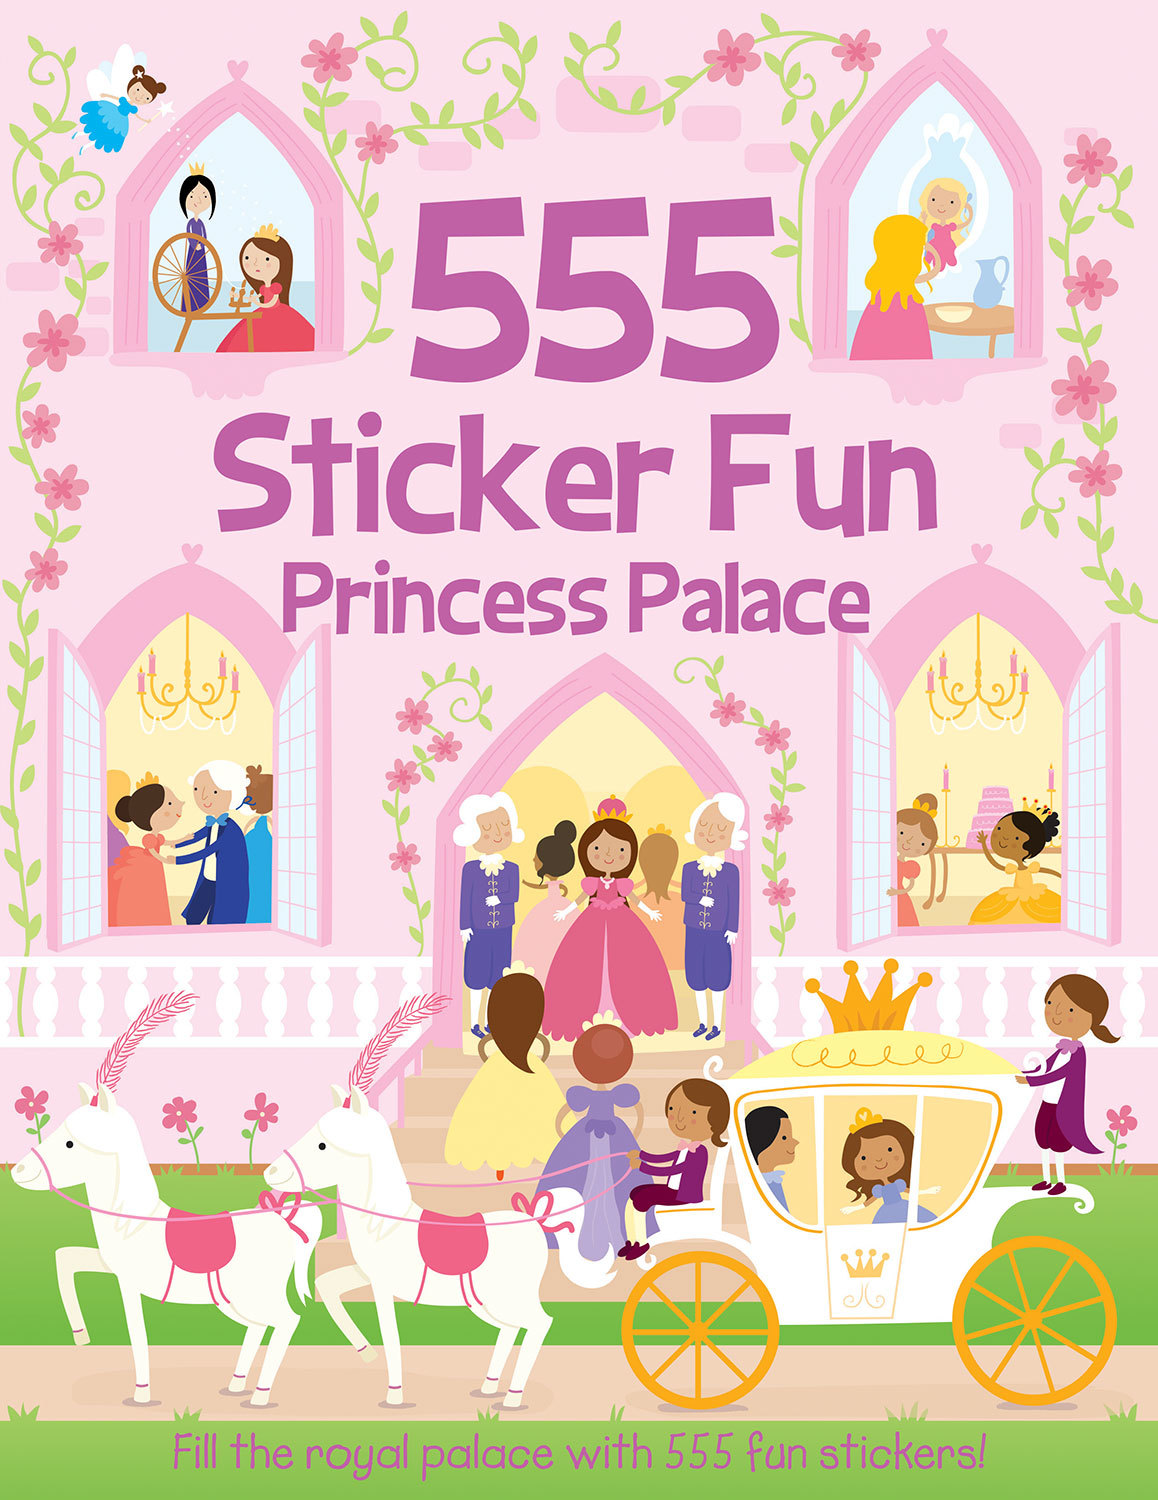 555 STICKER FUN PRINCESS PALACE